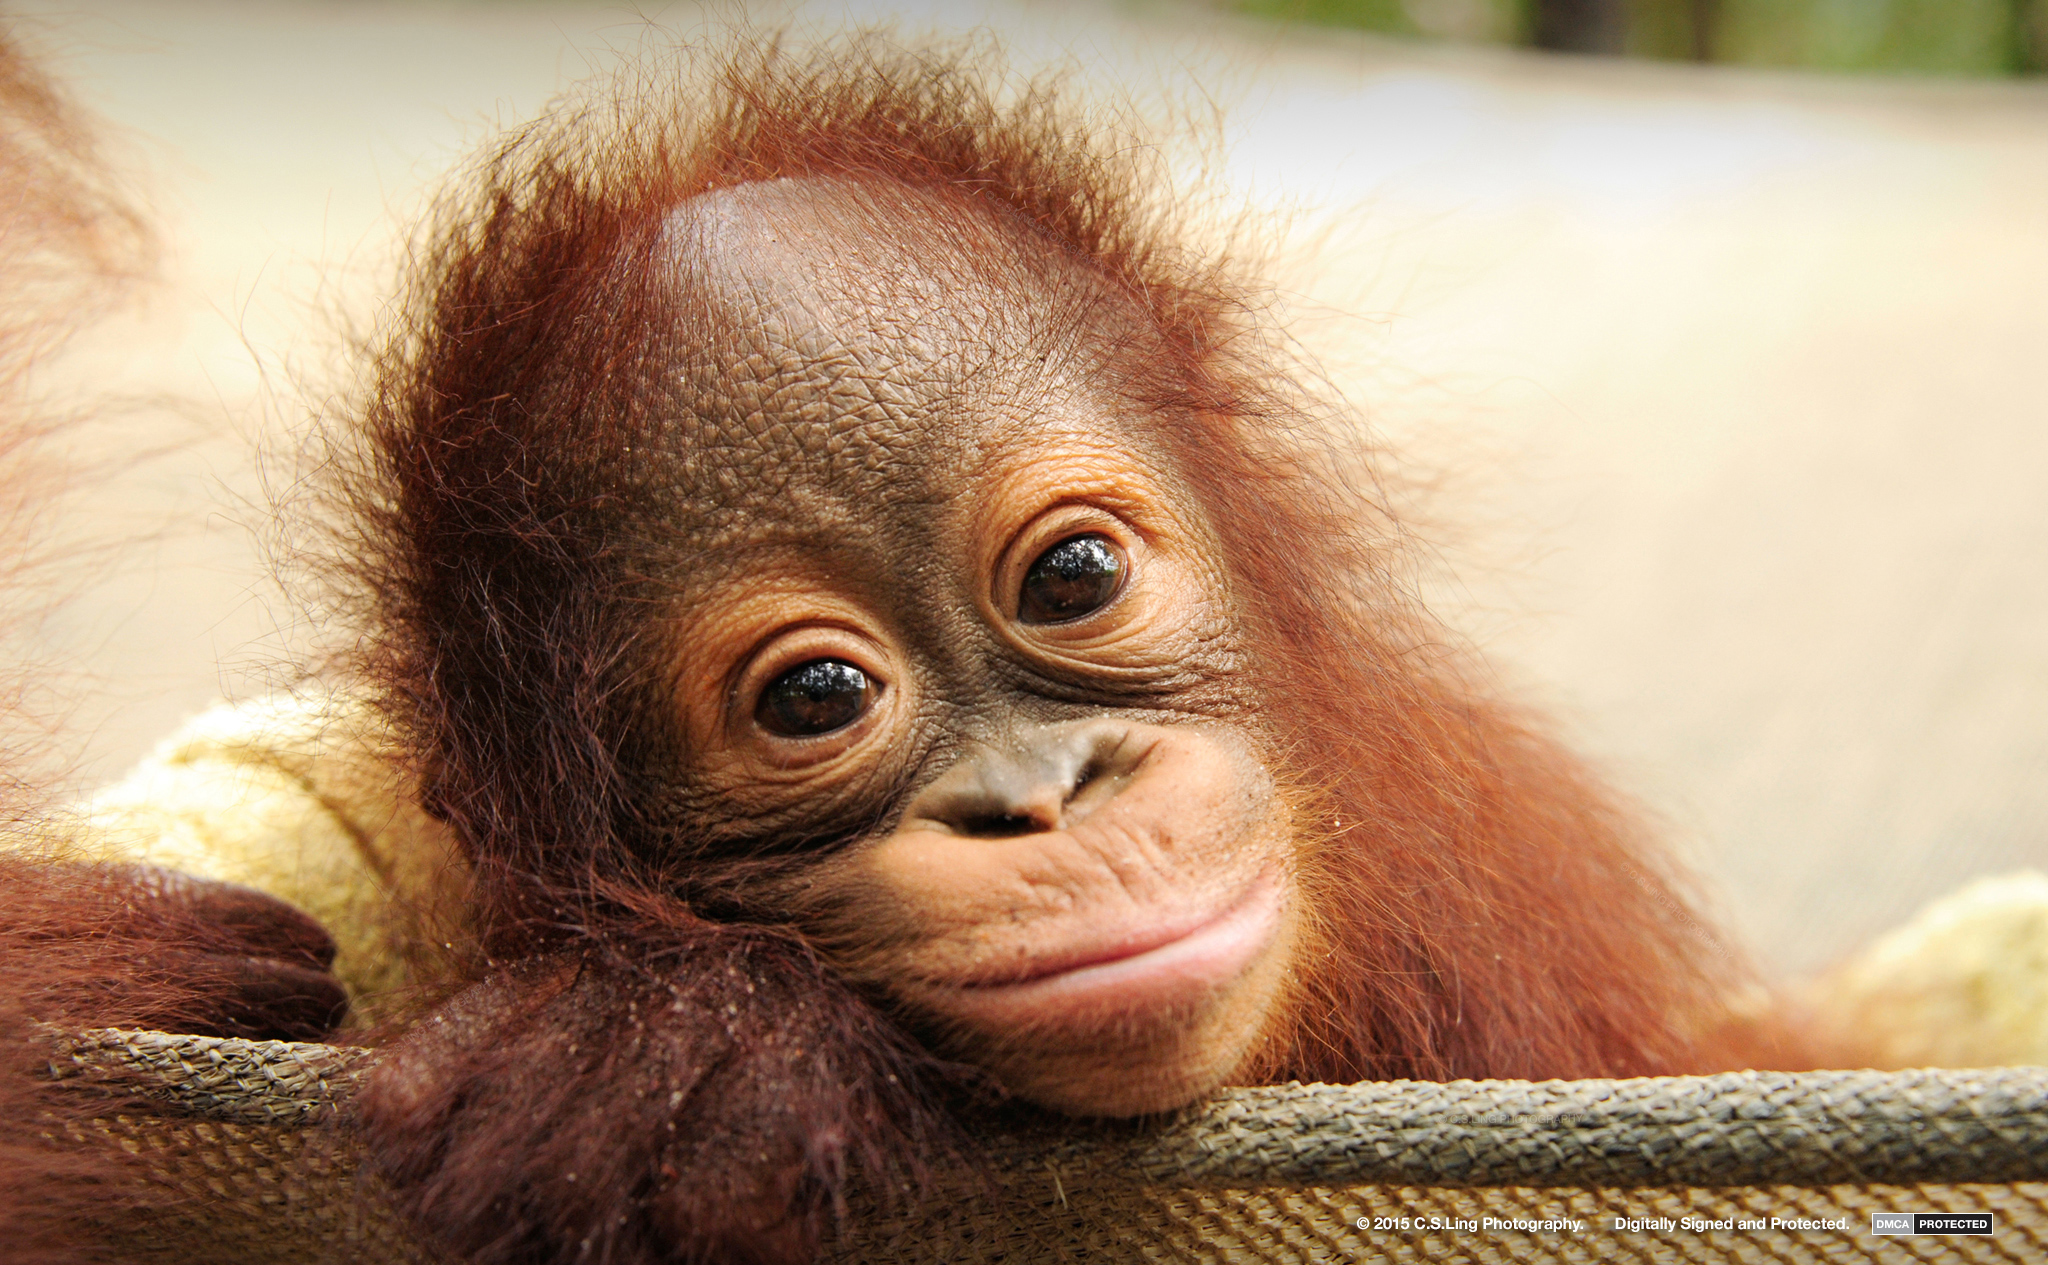 Orangutan Orphans | Wildlife Conservation Photographer C.S.Ling